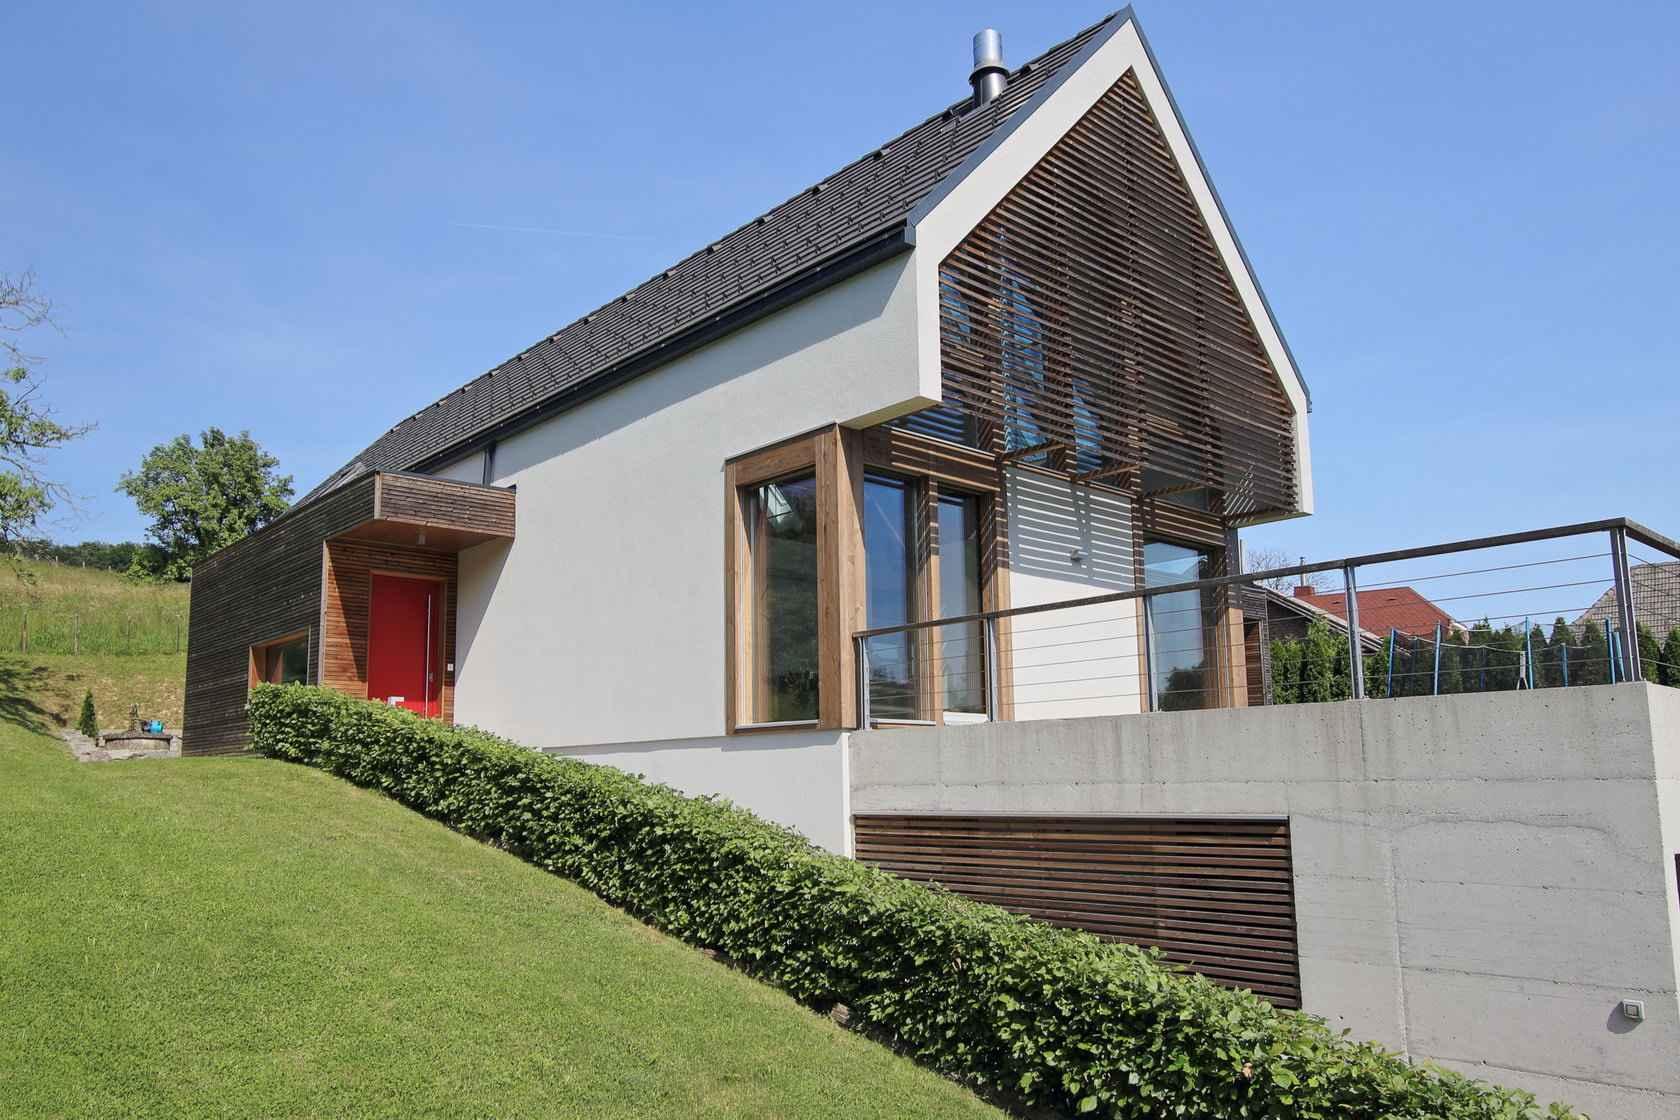 Modern House - A combination of a flat and gable roof